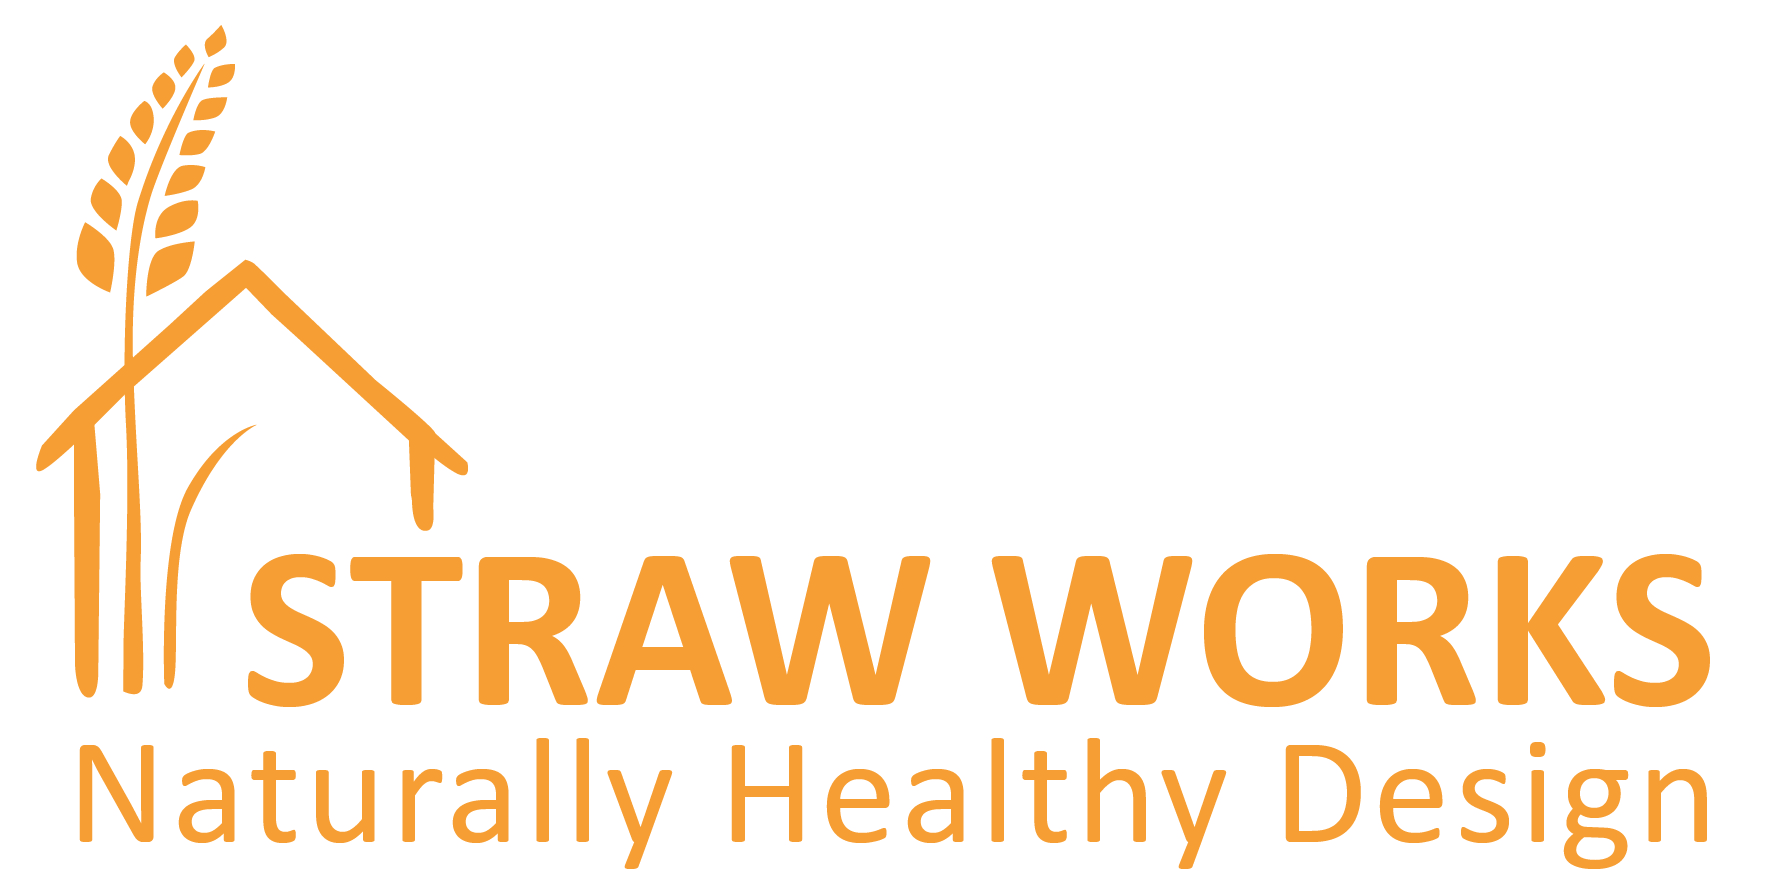 Straw Works logo